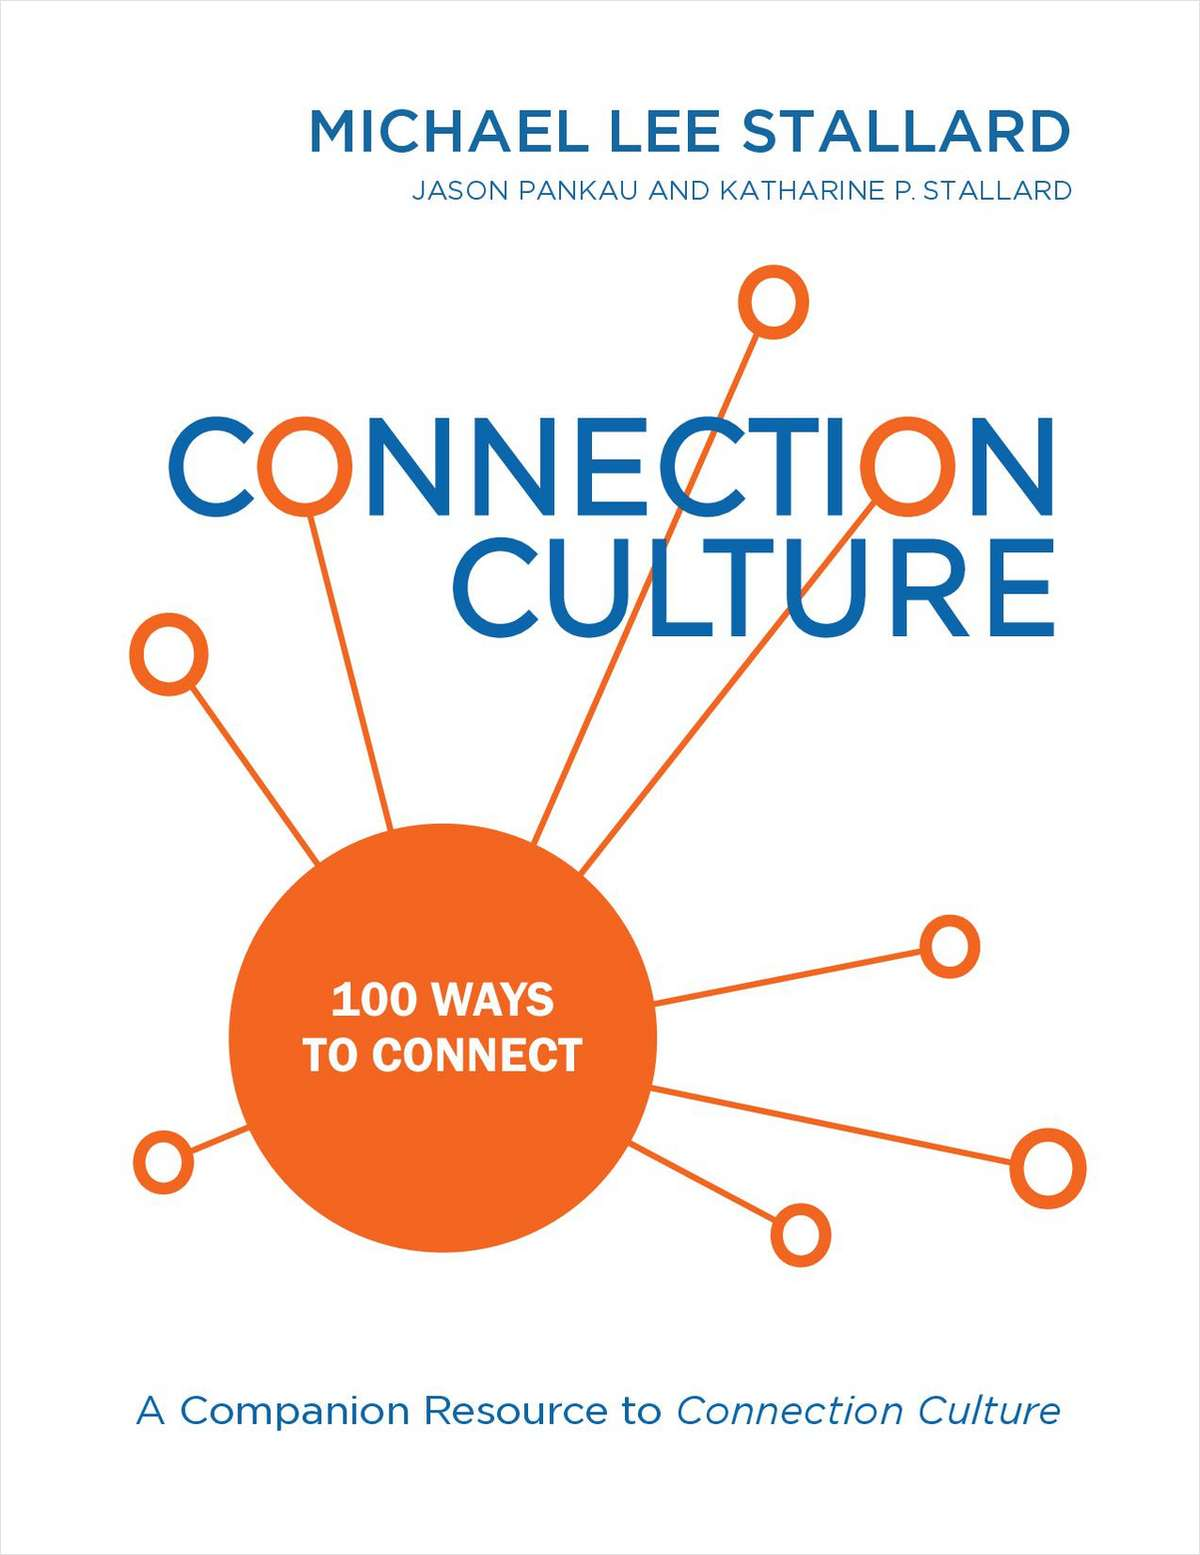 Connection Culture: 100 Ways to Connect (A $30 Value) FREE!